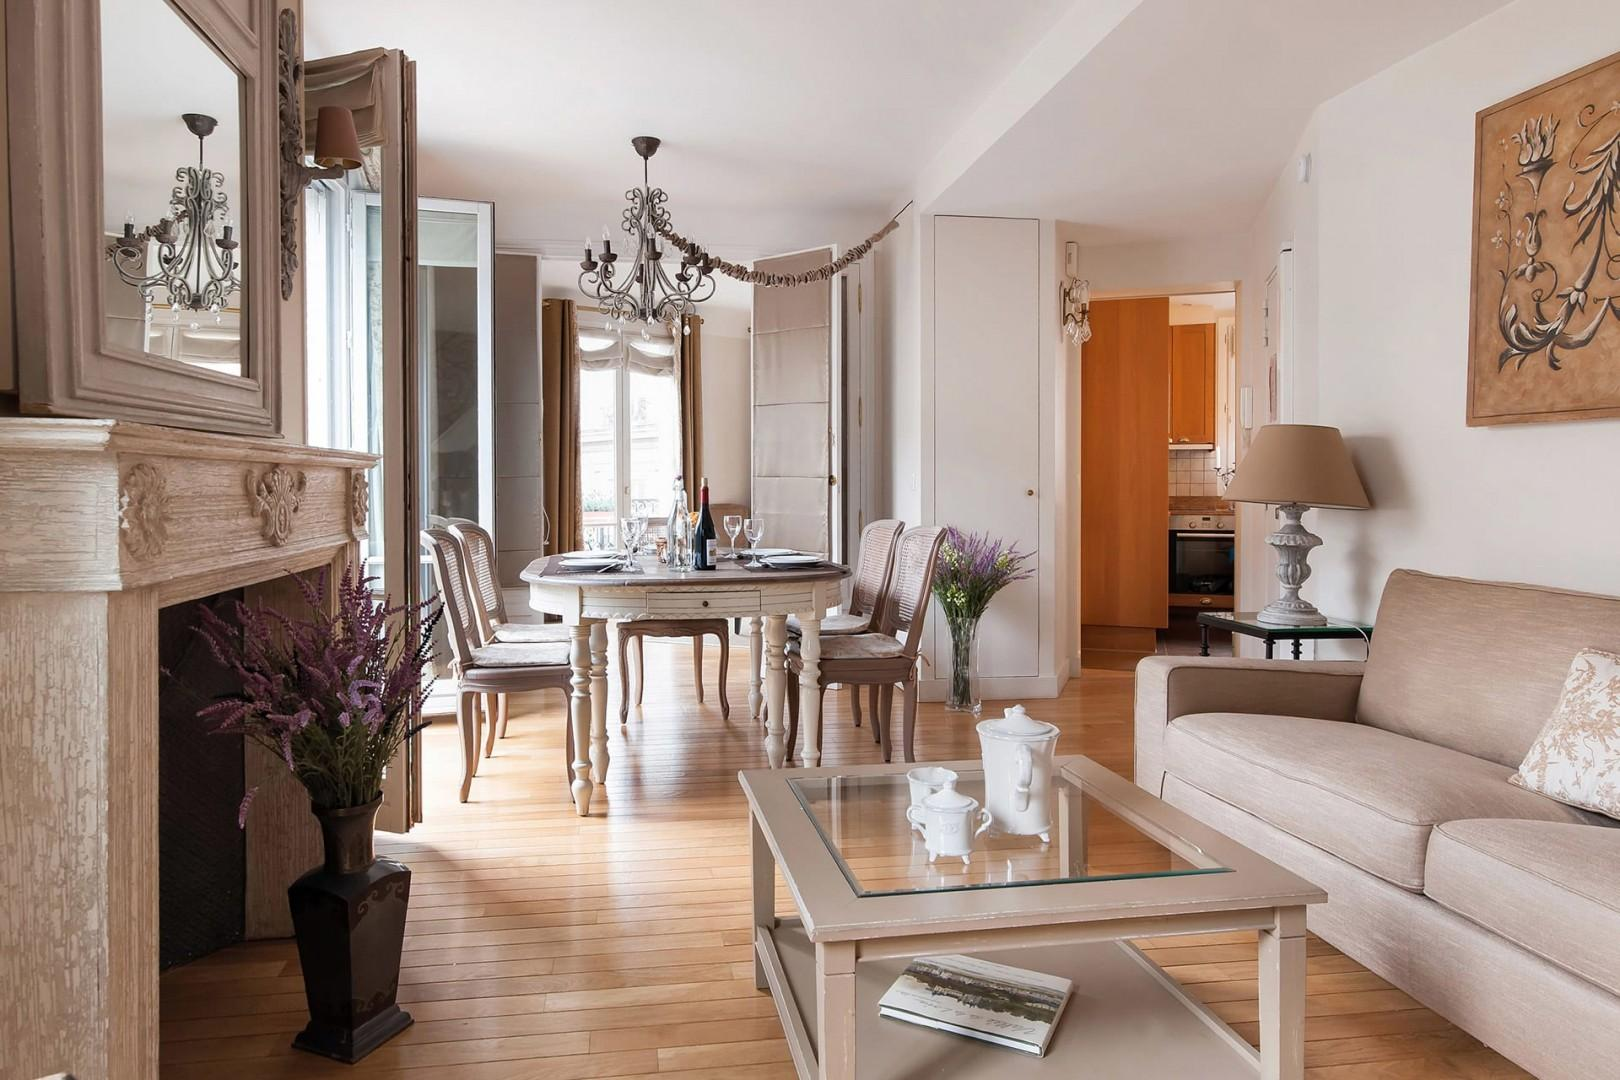 The spacious open-plan living and dining area is great for entertaining.